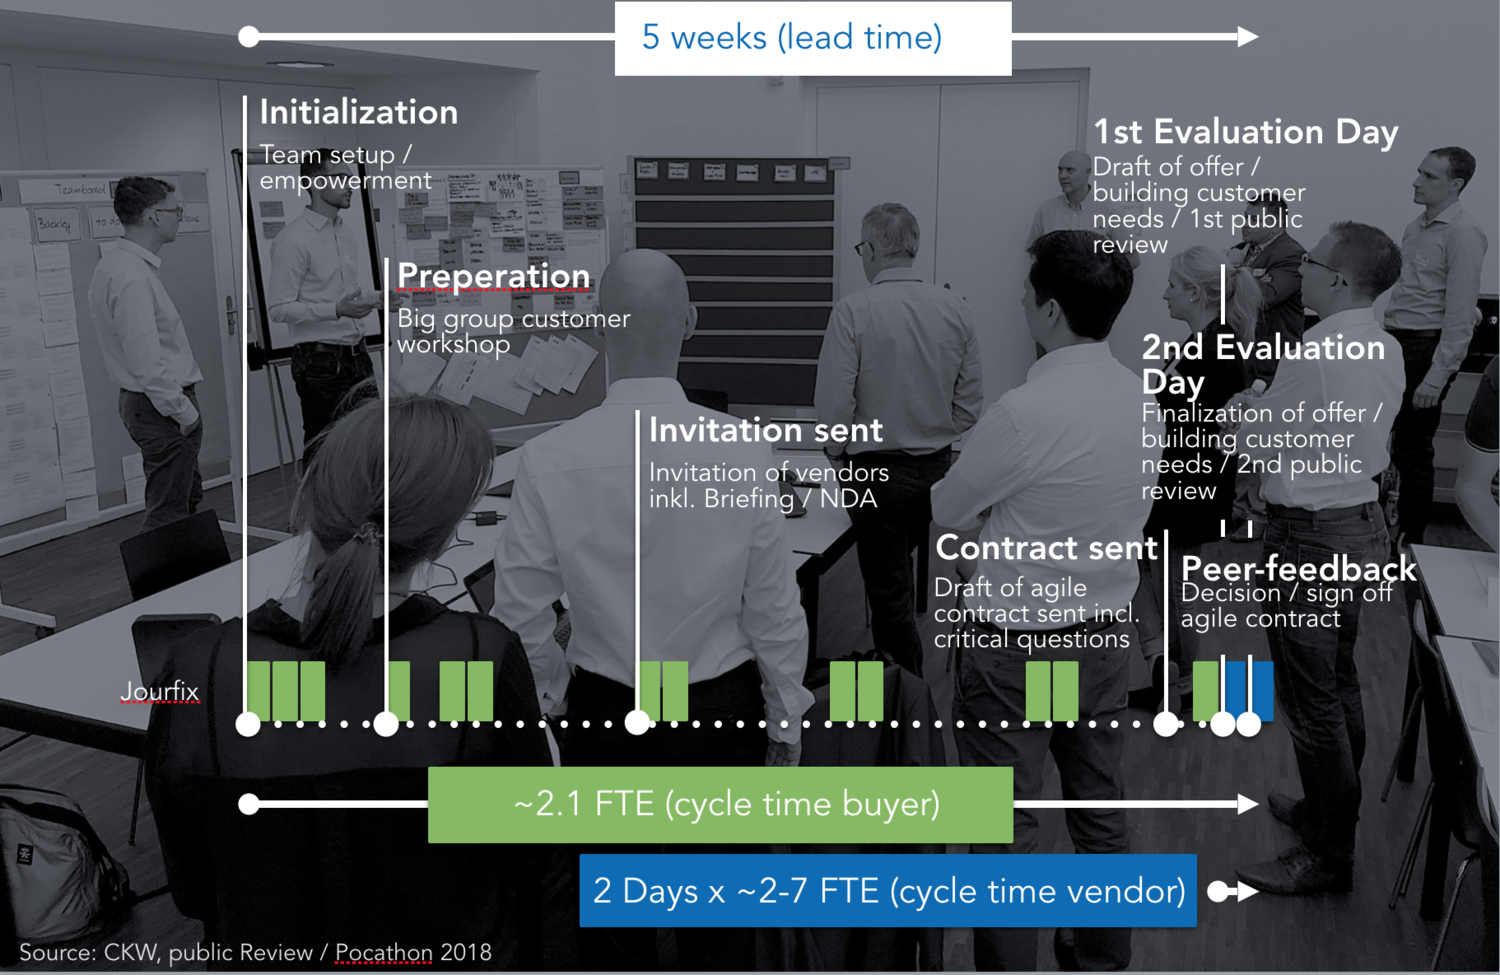 approach-n-timing-ckw-lean-agile-procurement-1.png